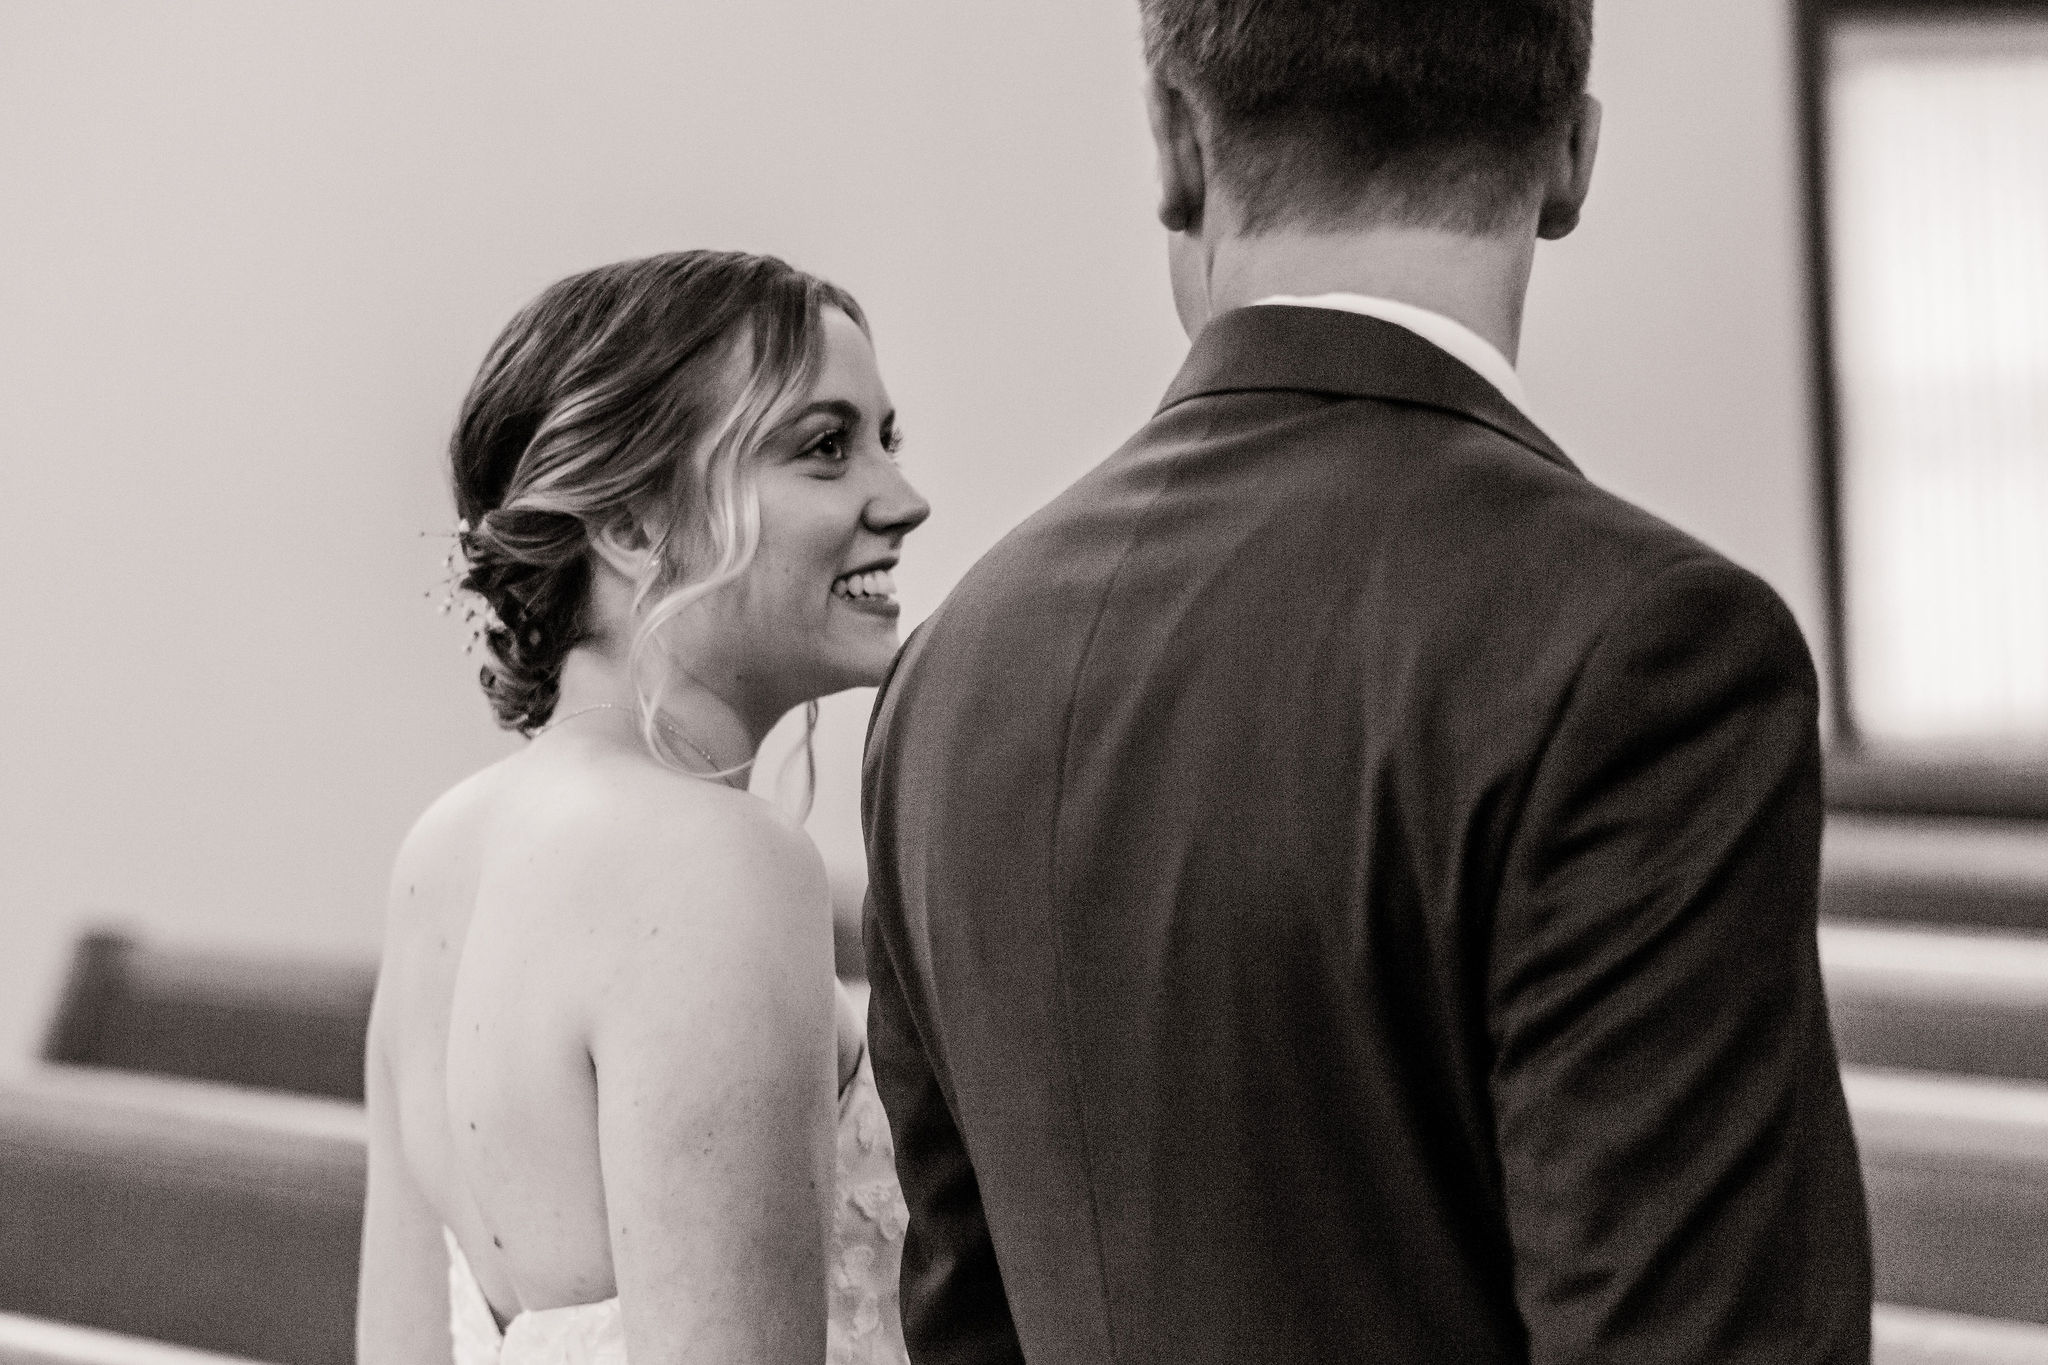 katie_graham_photography_luxury_destination_fine_art_wedding_photographer_bemus_point_mayville_chautauqua_lakewood_buffalo_new_york_erie_pennsylvania